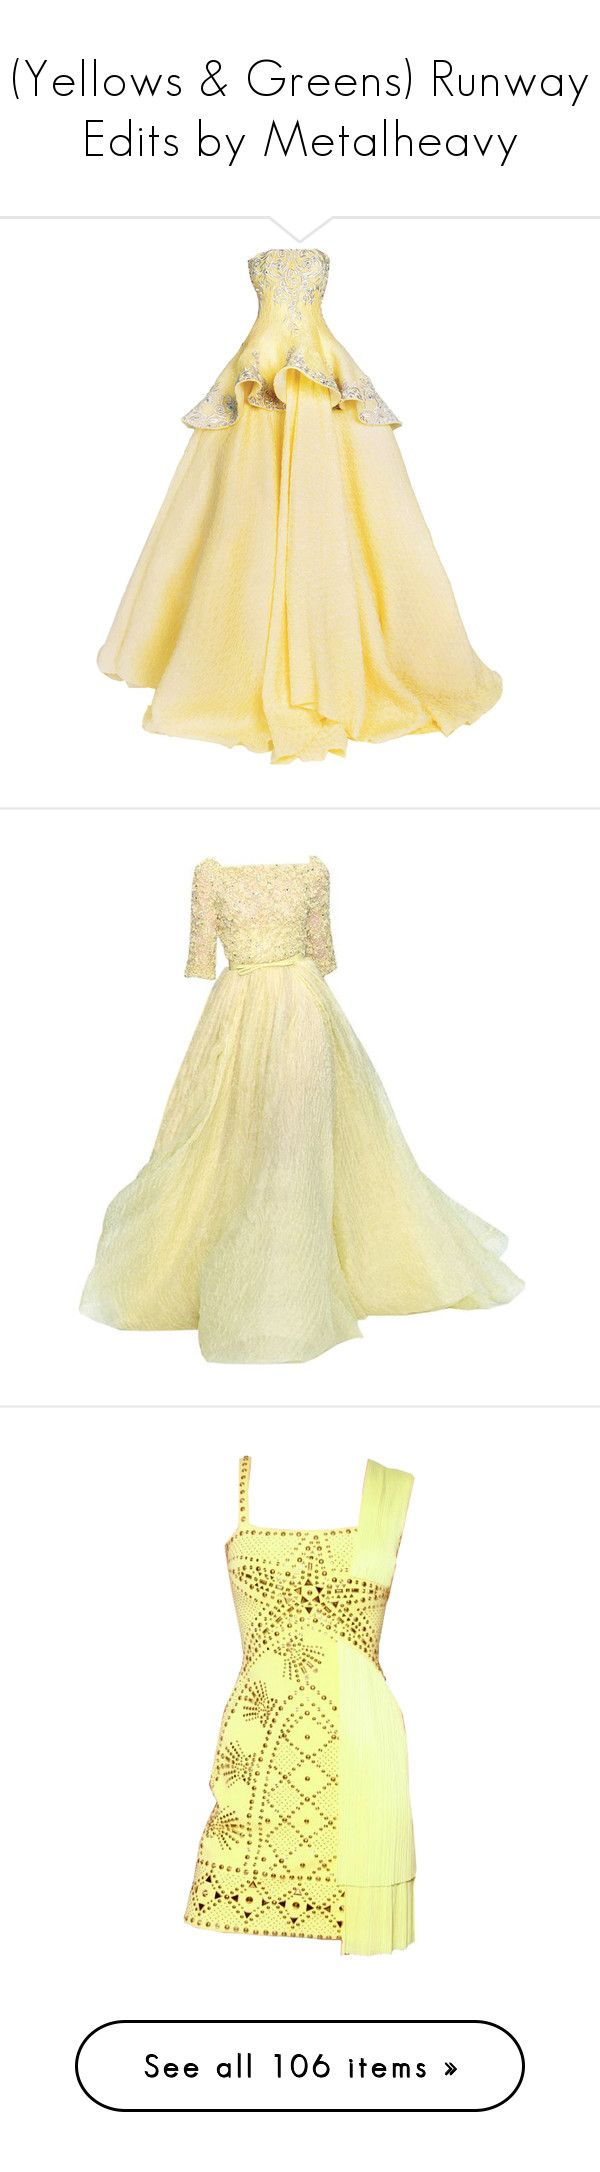 """""""(Yellows & Greens) Runway Edits by Metalheavy"""" by metalheavy ❤ liked on Polyvore featuring dresses, gowns, long dresses, rami kadi, vestidos, elie saab, long dress, beige gown, elie saab evening gowns and elie saab evening dresses"""